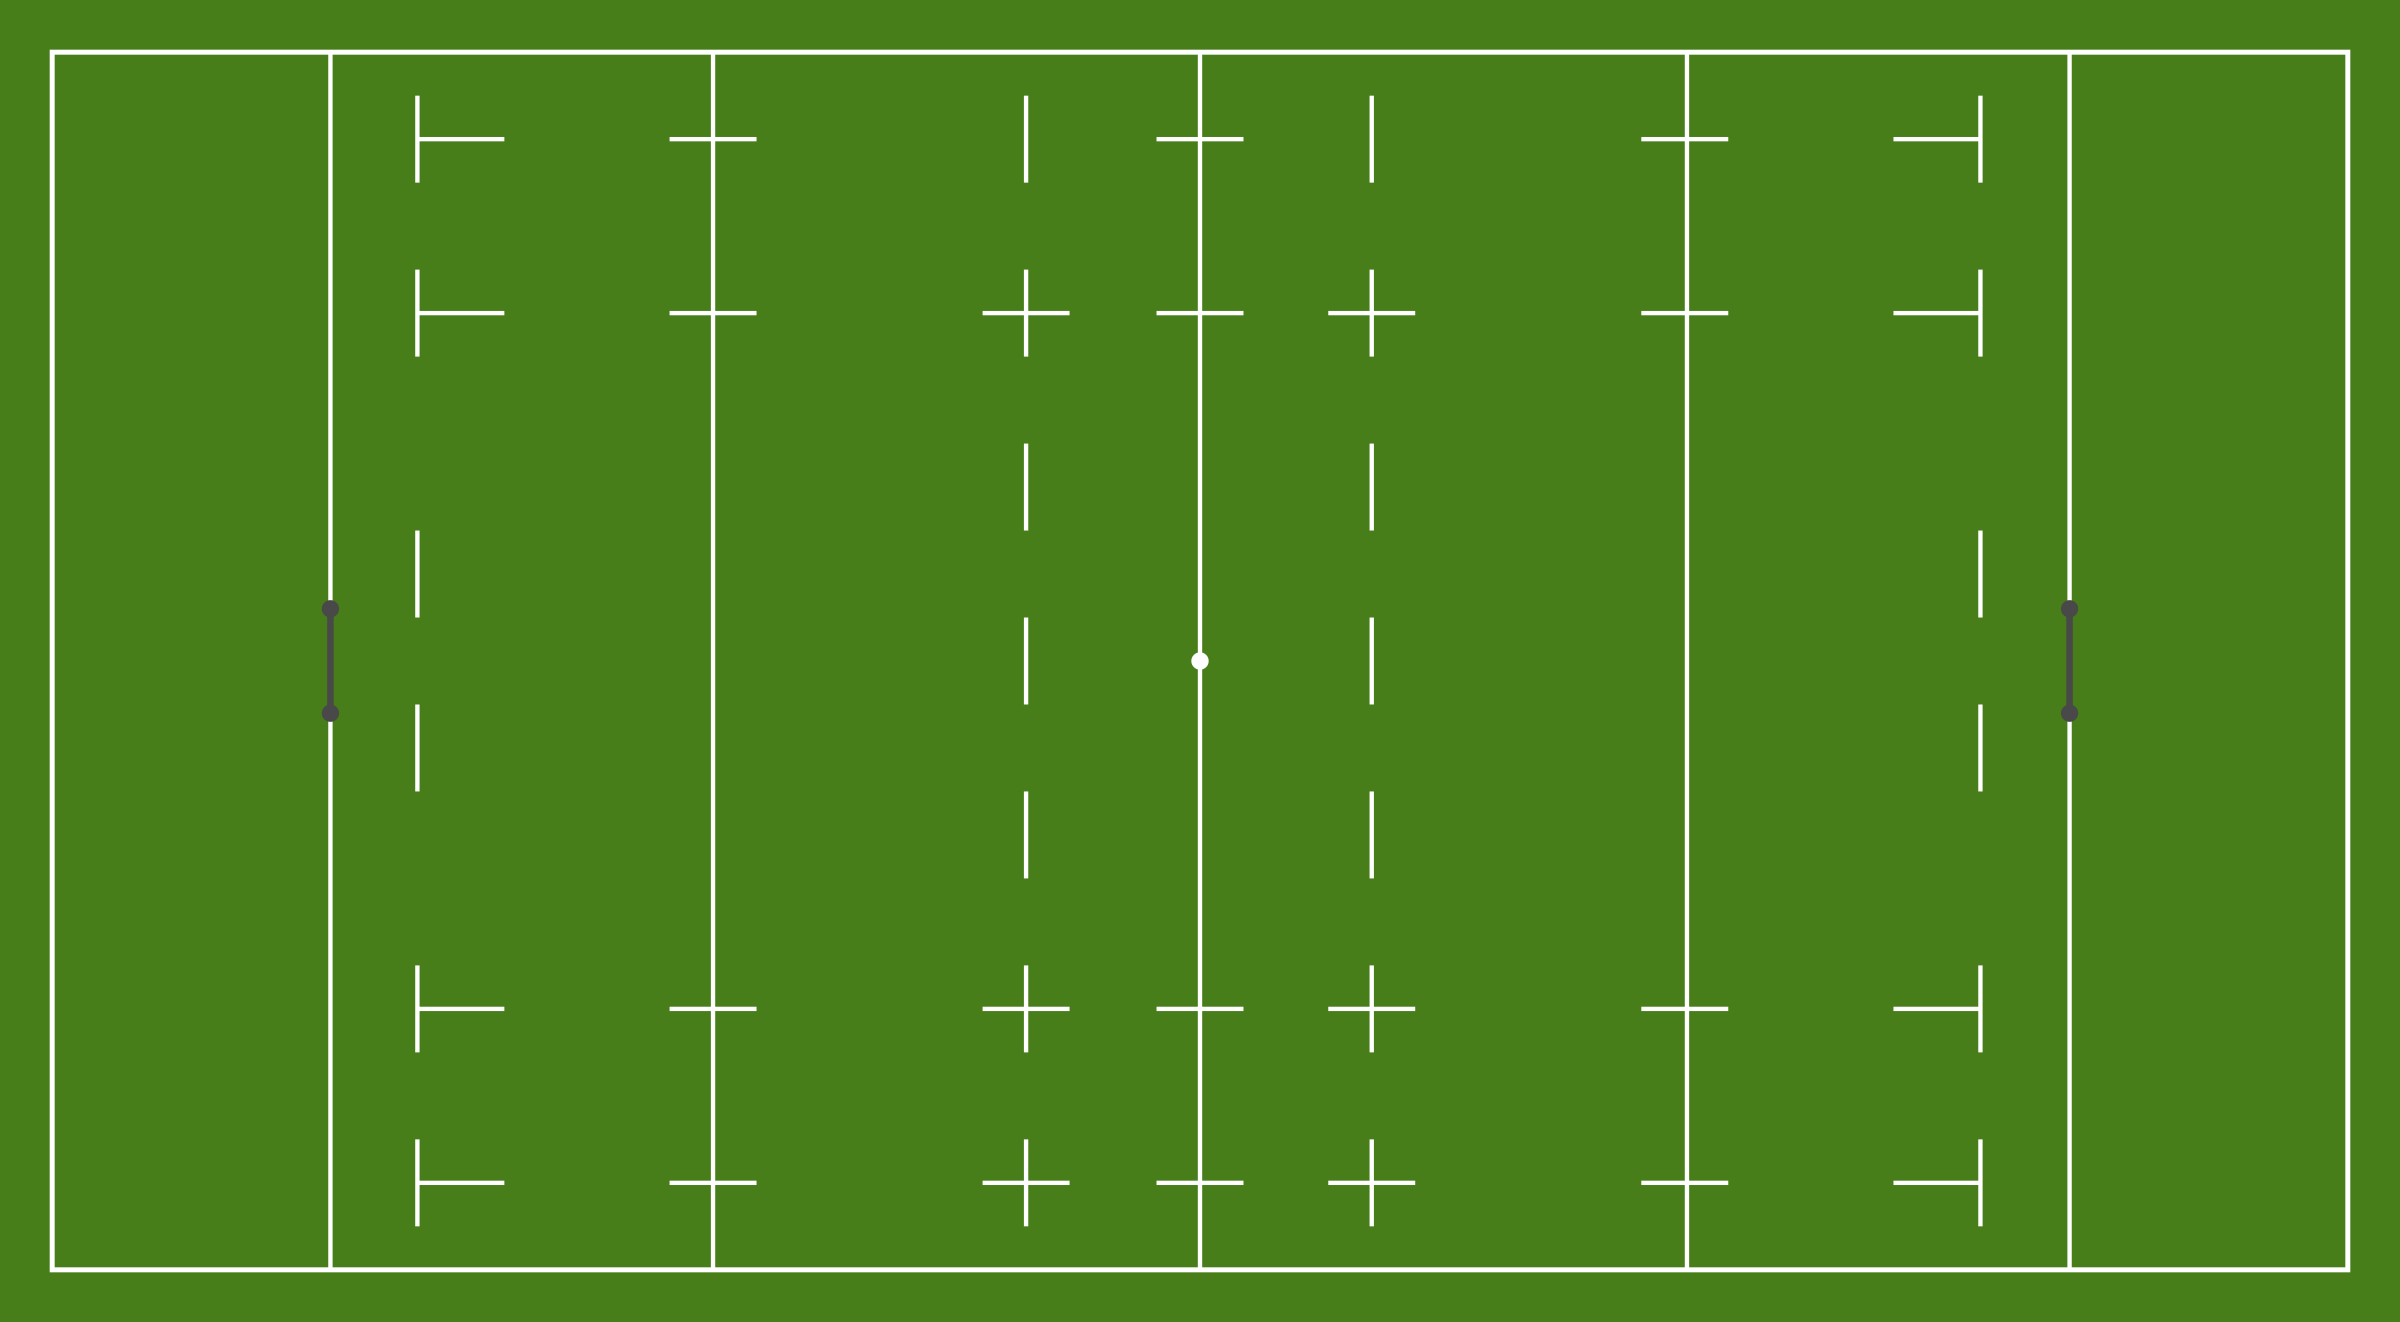 Rugby union pitch by Firkin